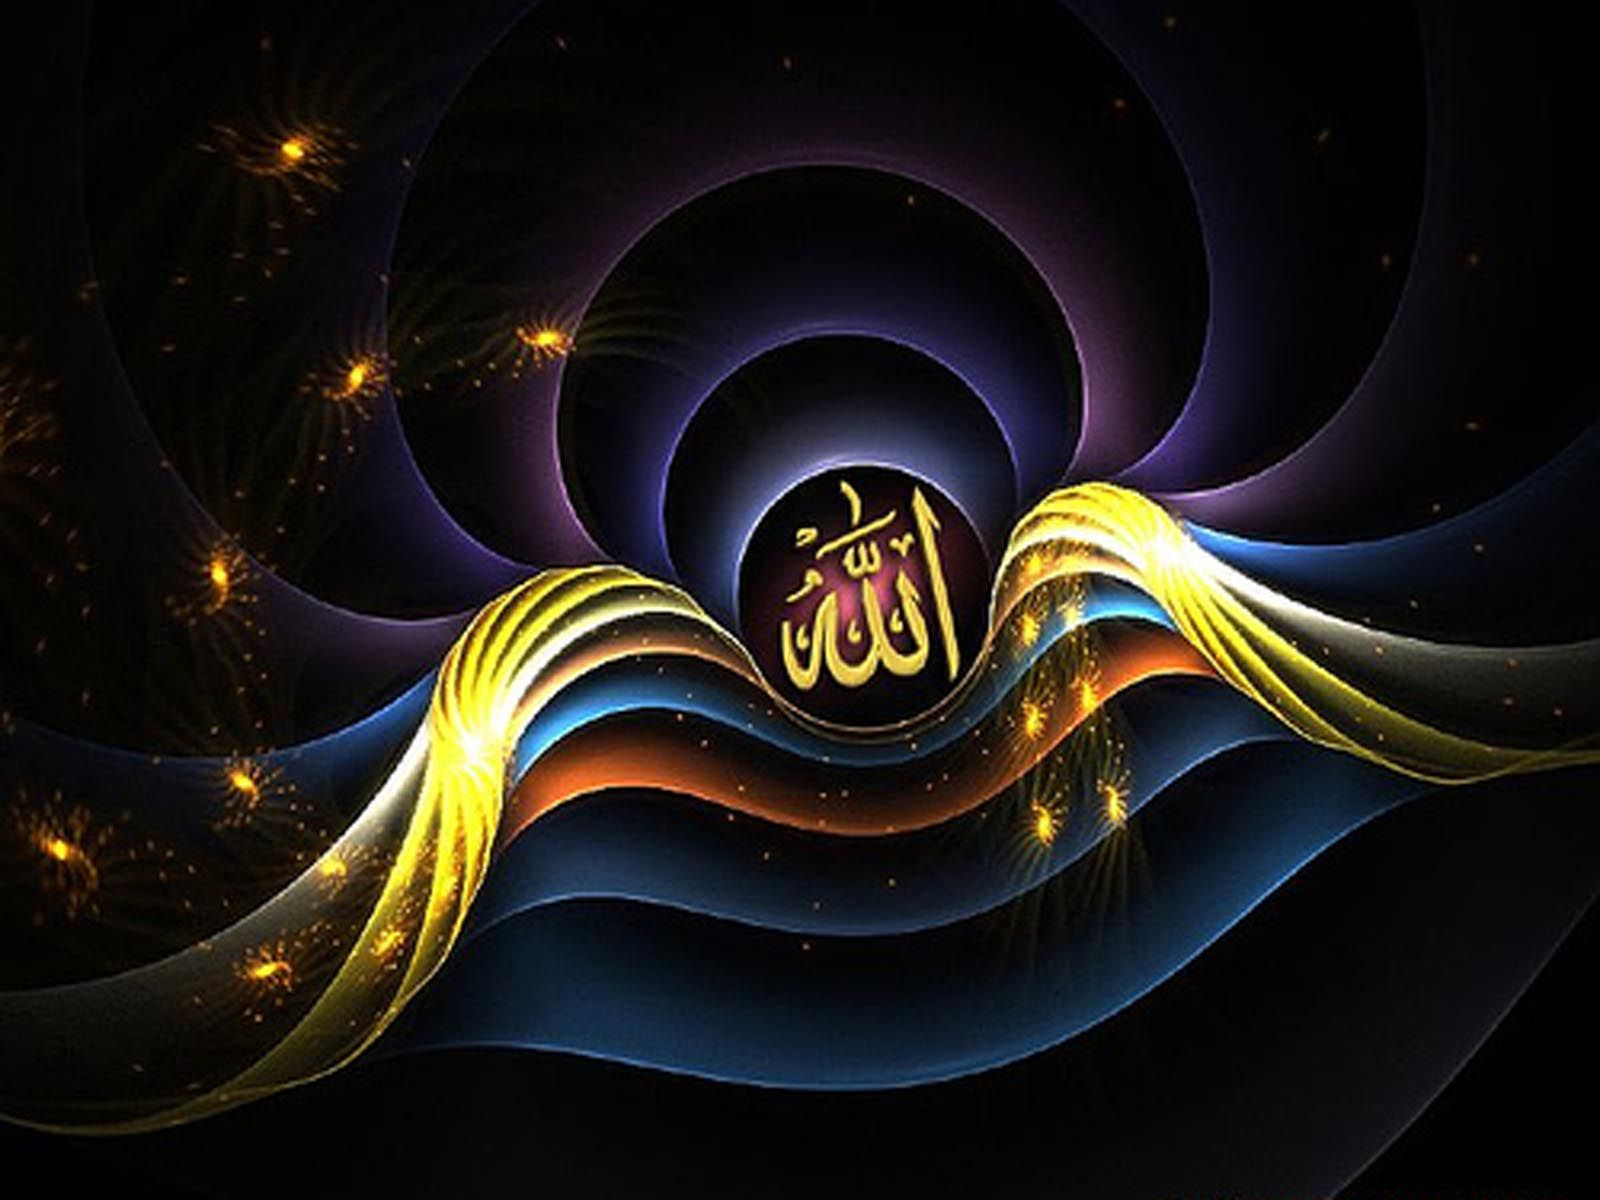 Ewallpapershub provide the latest Allah Symbol Wallpapers